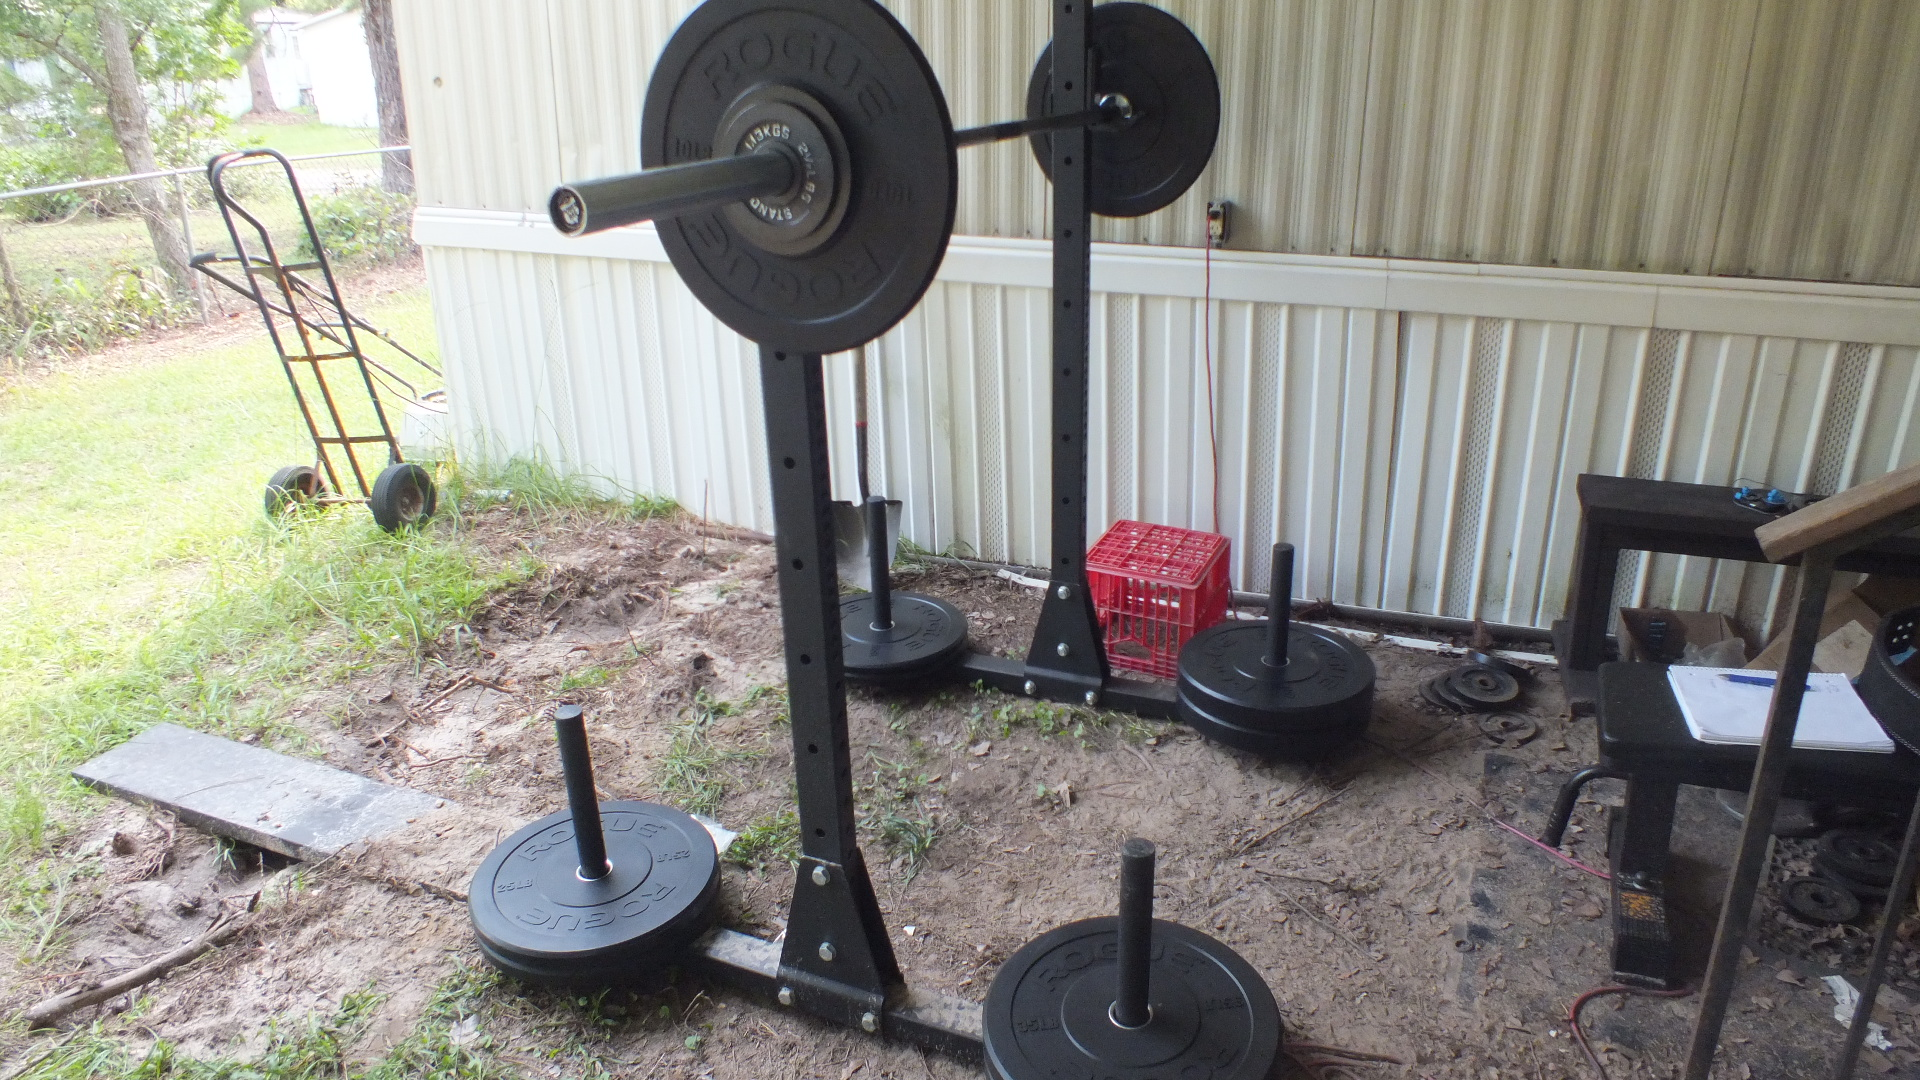 Garage Gym Reviews Titan Review Of Rogue Ohio Power Bar And Echo Bumper Plates By Spear